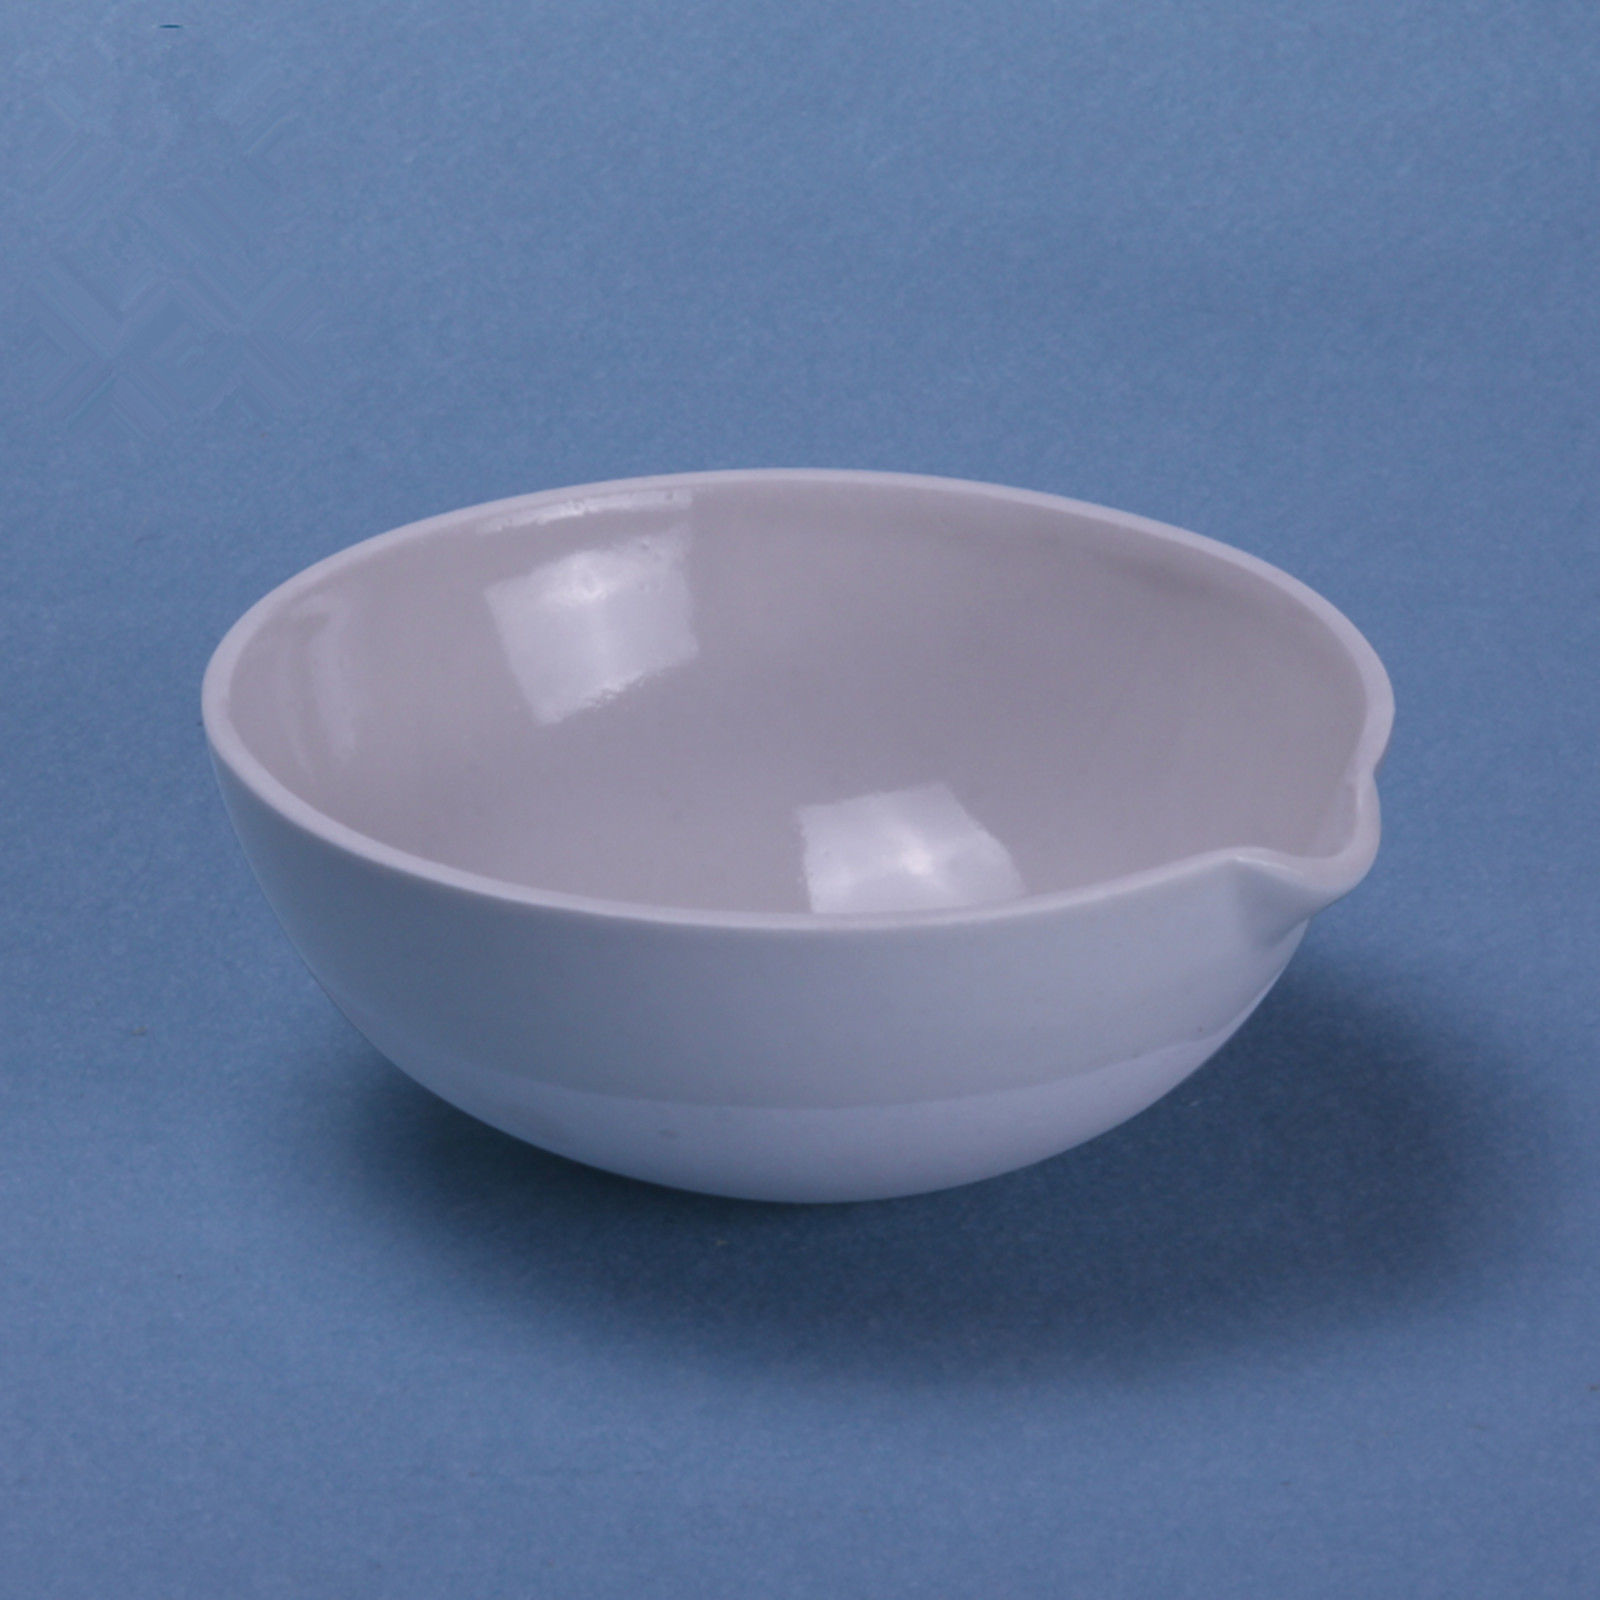 100ml,Porcelain Evaporating Dish,Round Bottom,Chemical Labware ... for Evaporating Dish Laboratory Apparatus  83fiz